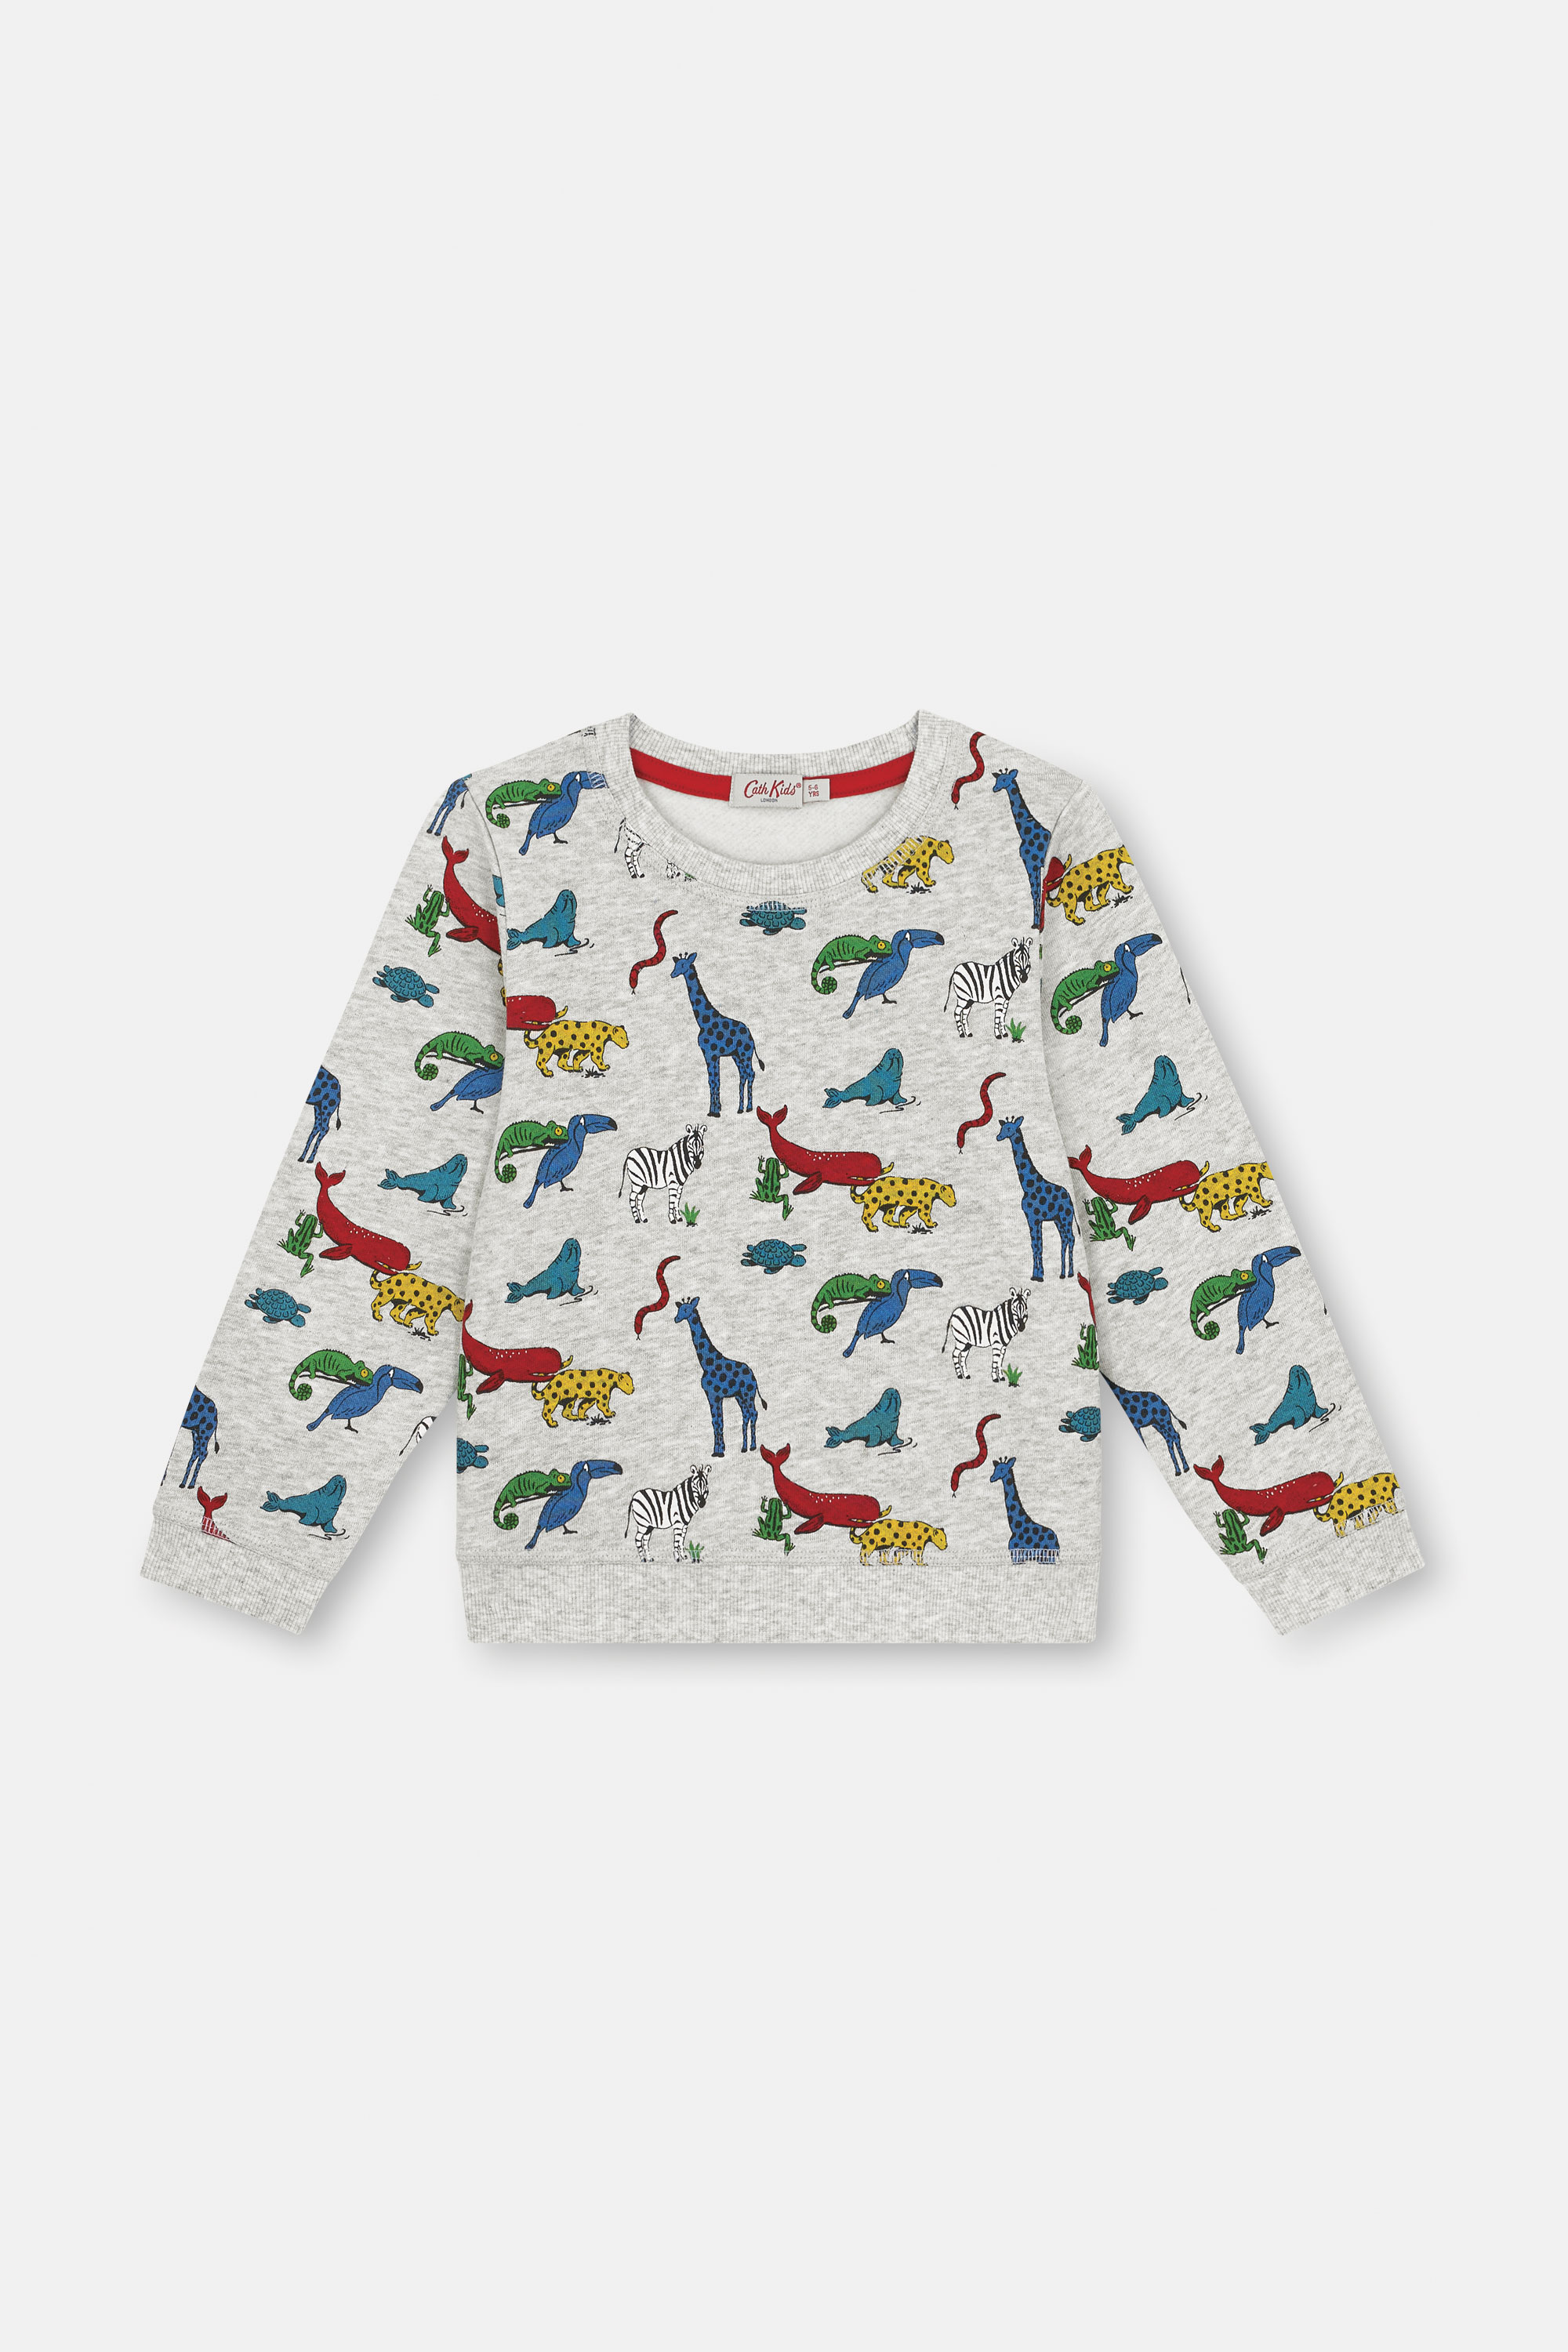 Cath Kidston Animals Oscar Sweatshirt in Grey Marl, 1-2 yr